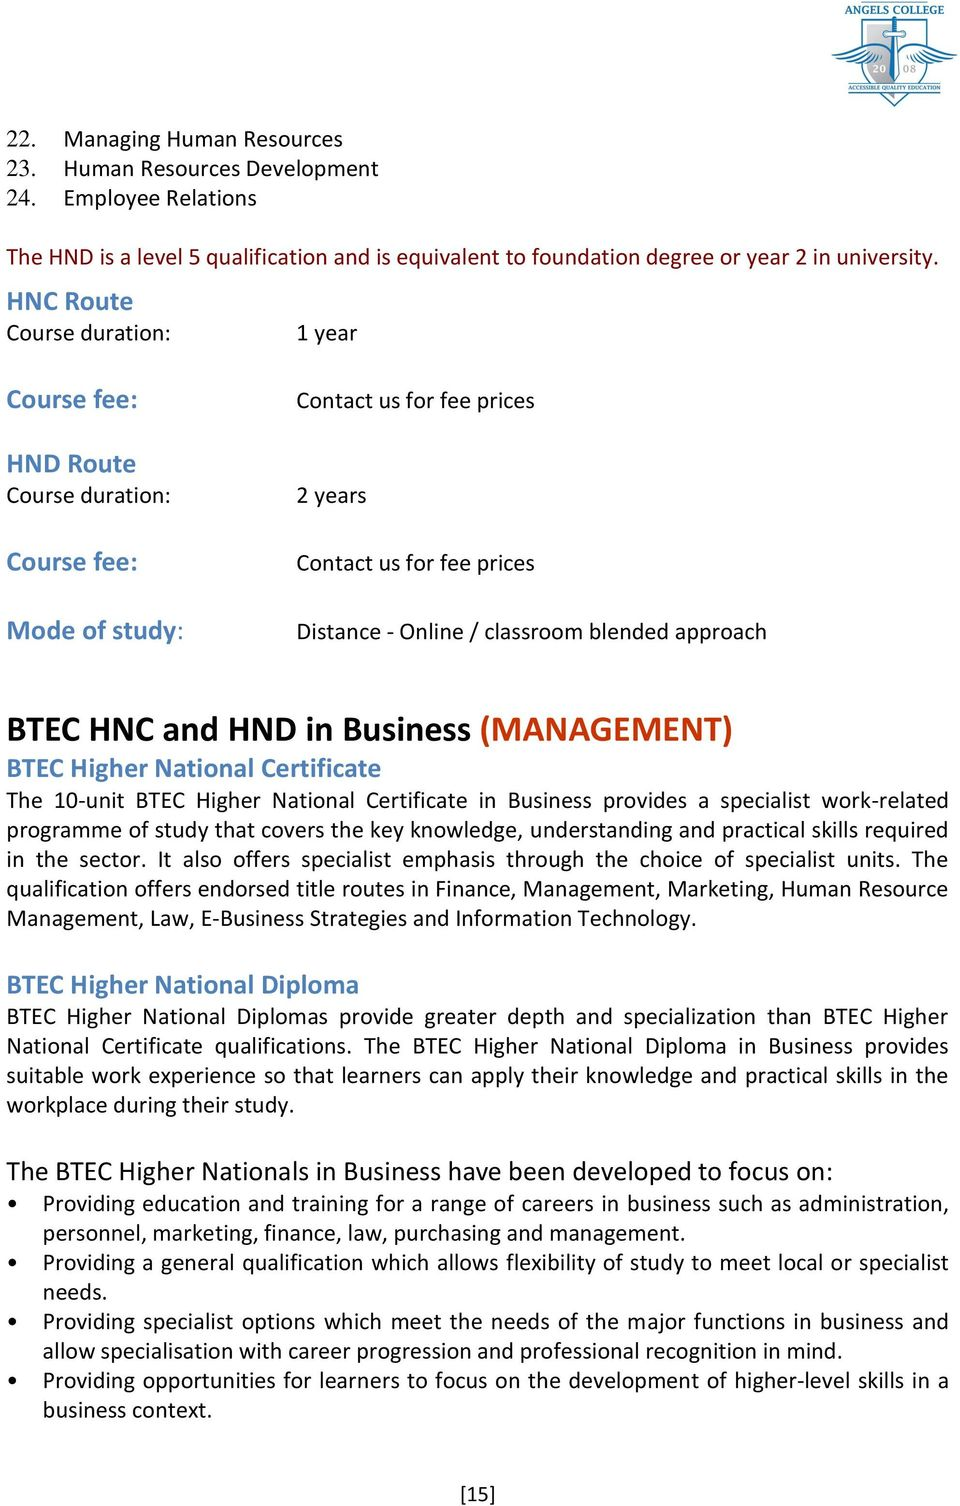 Certificate The 10-unit BTEC Higher National Certificate in Business provides a specialist work-related programme of study that covers the key knowledge, understanding and practical skills required